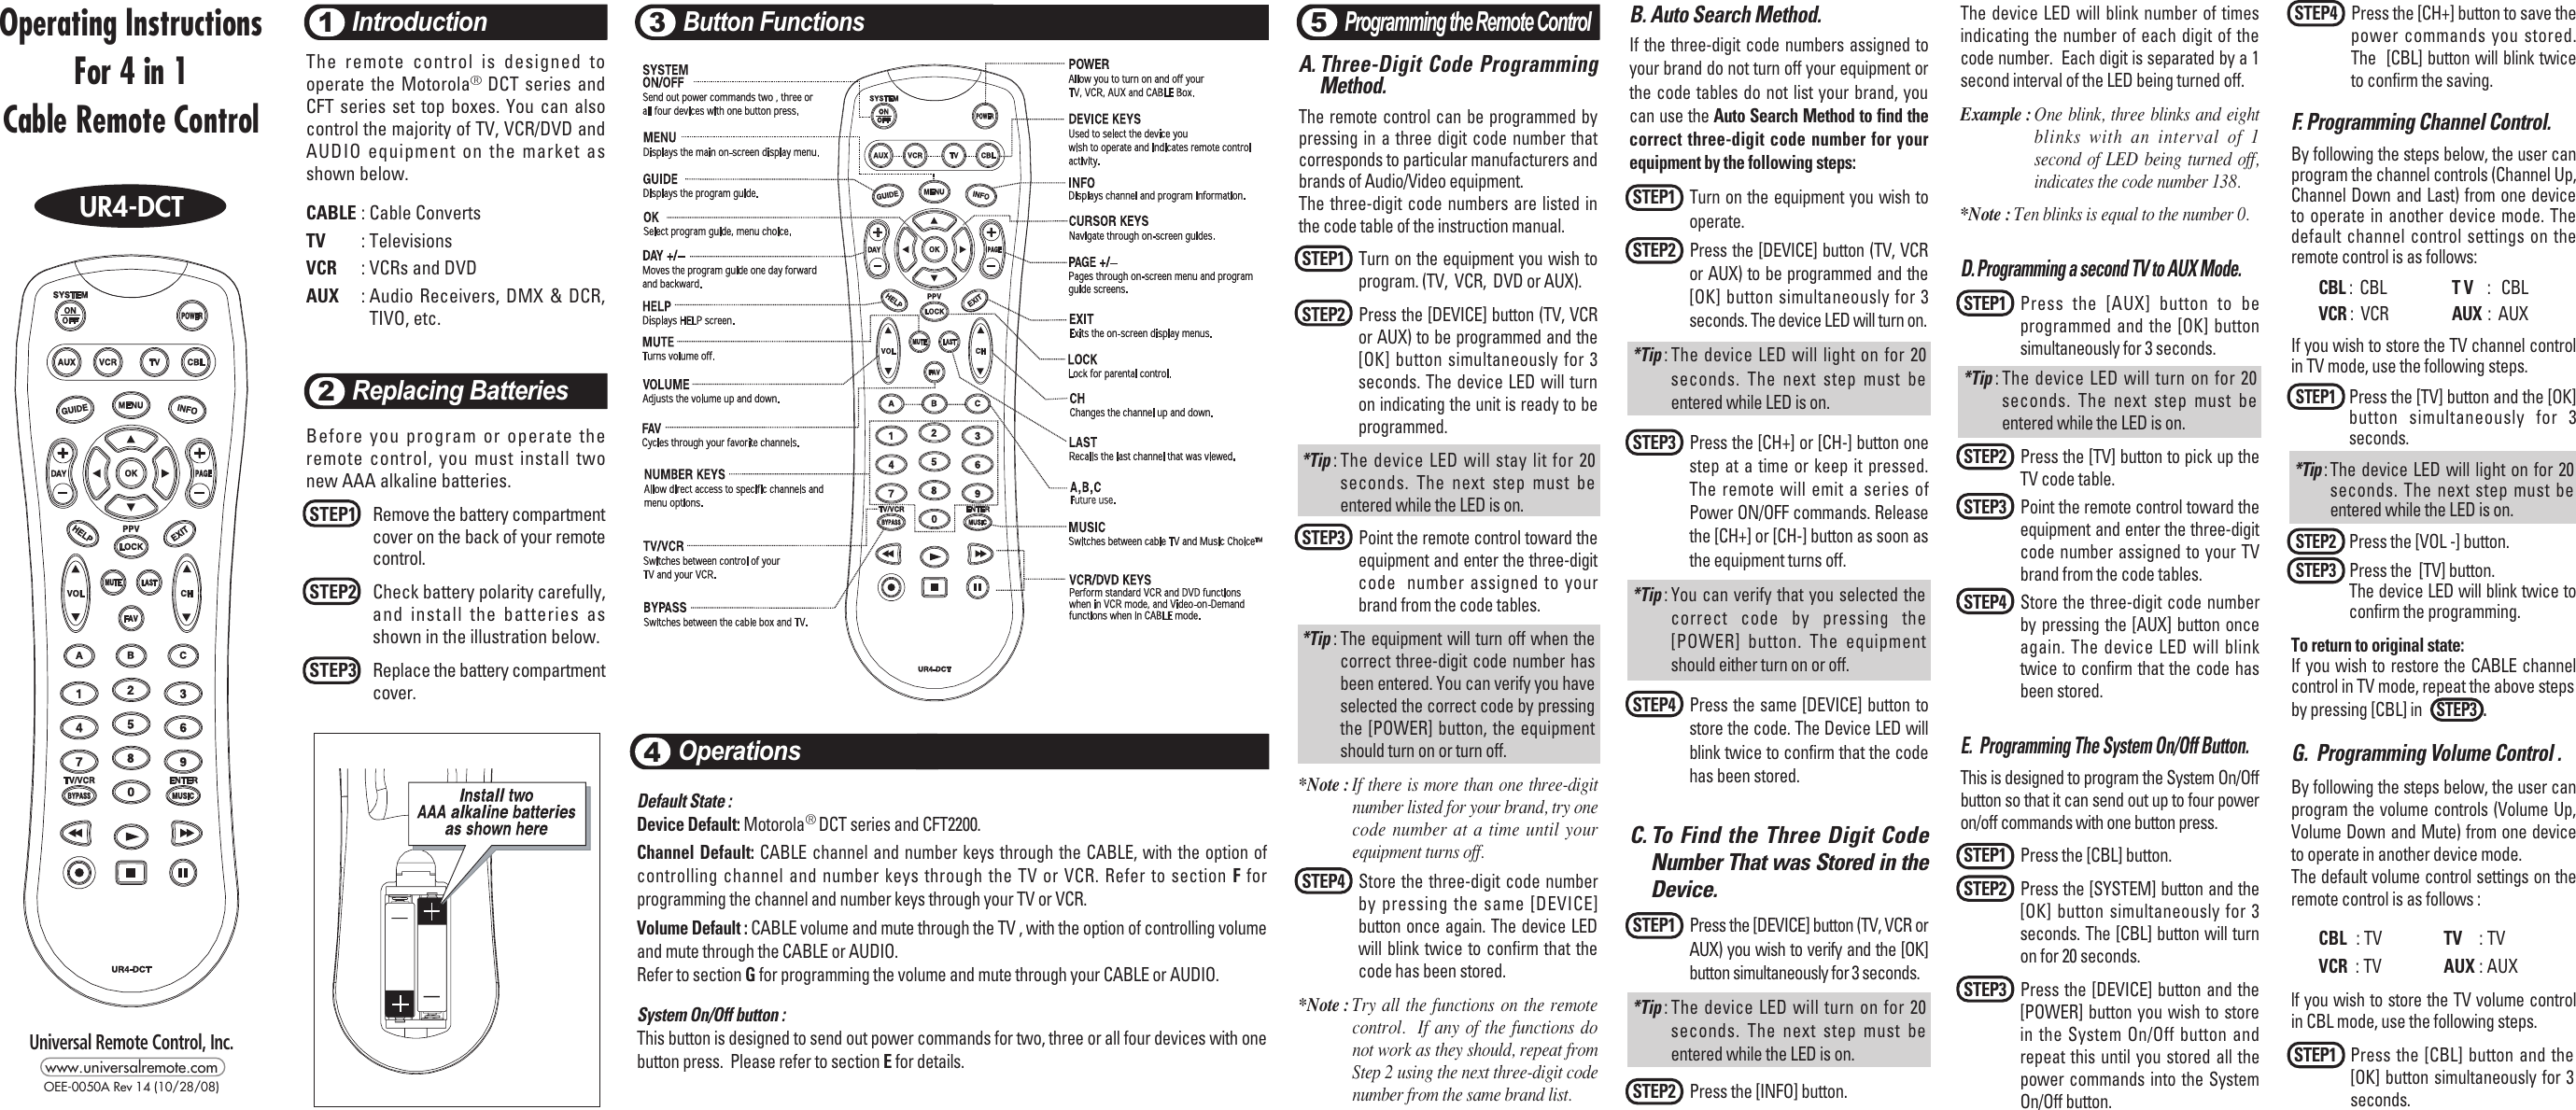 Universal Remote Control Ur4 Dct Programming Instructions